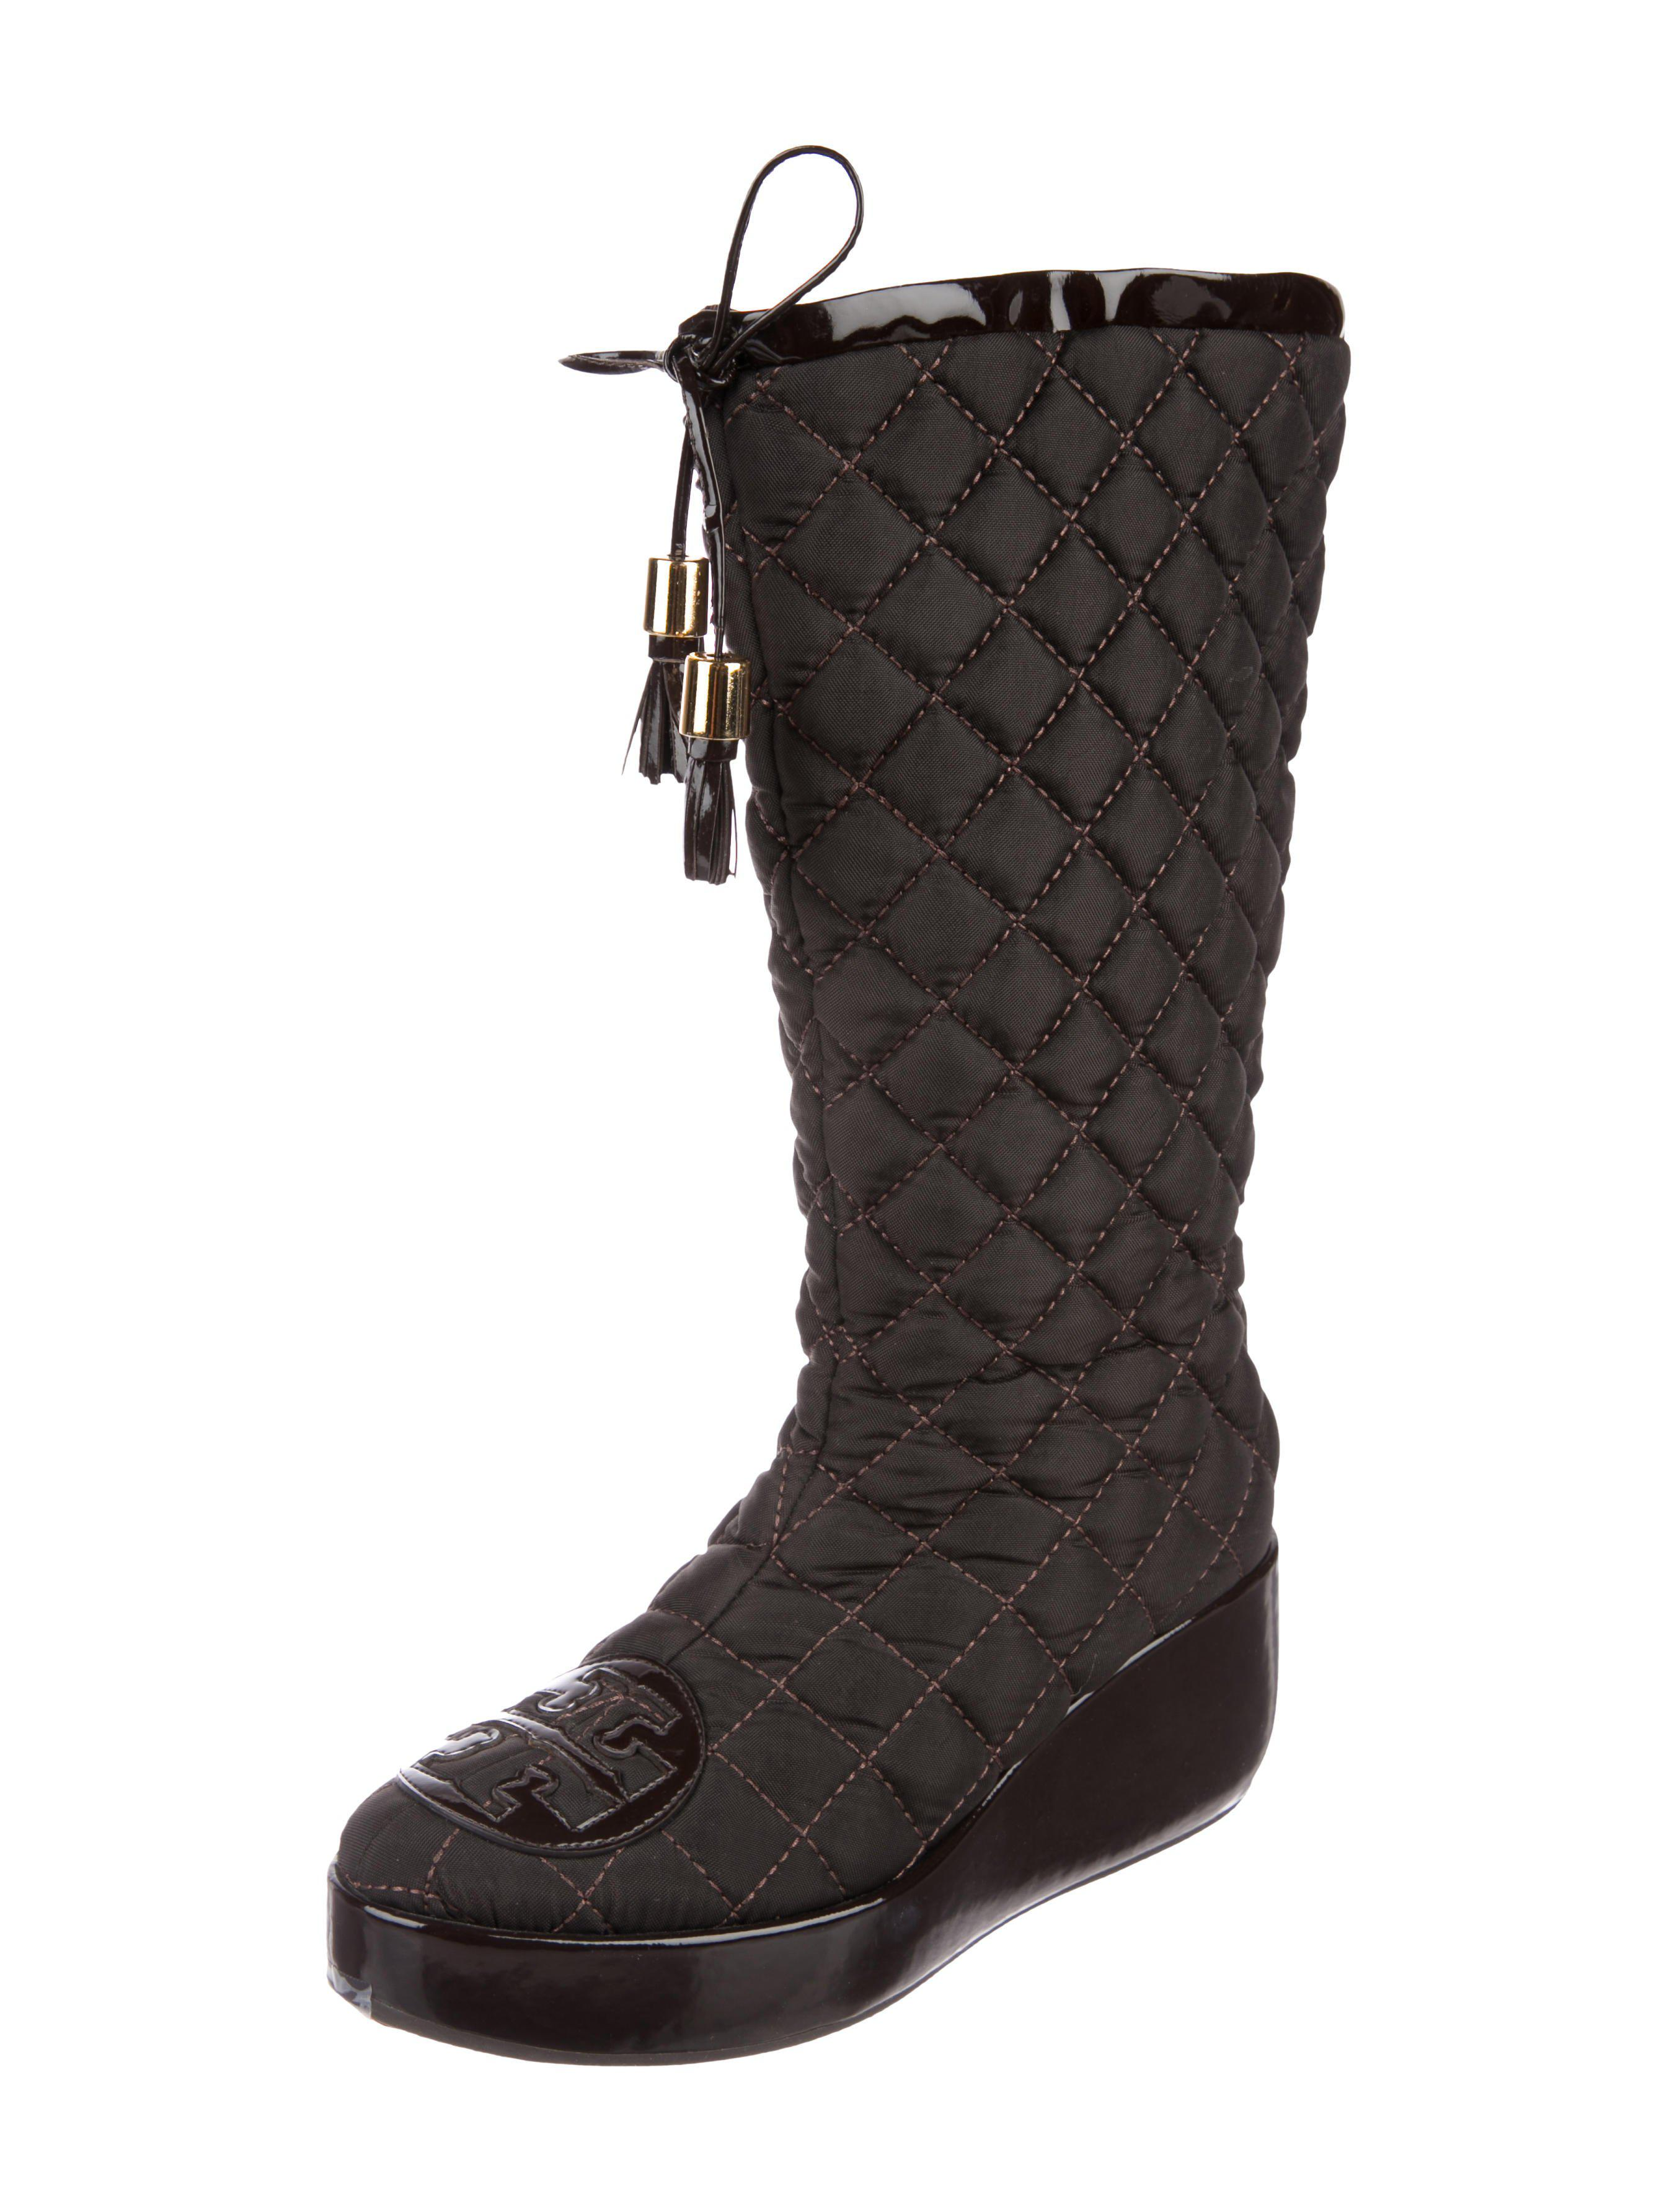 5518f8667a3 Tory Burch - Brown Gigi Quilted Boots - Lyst. View fullscreen